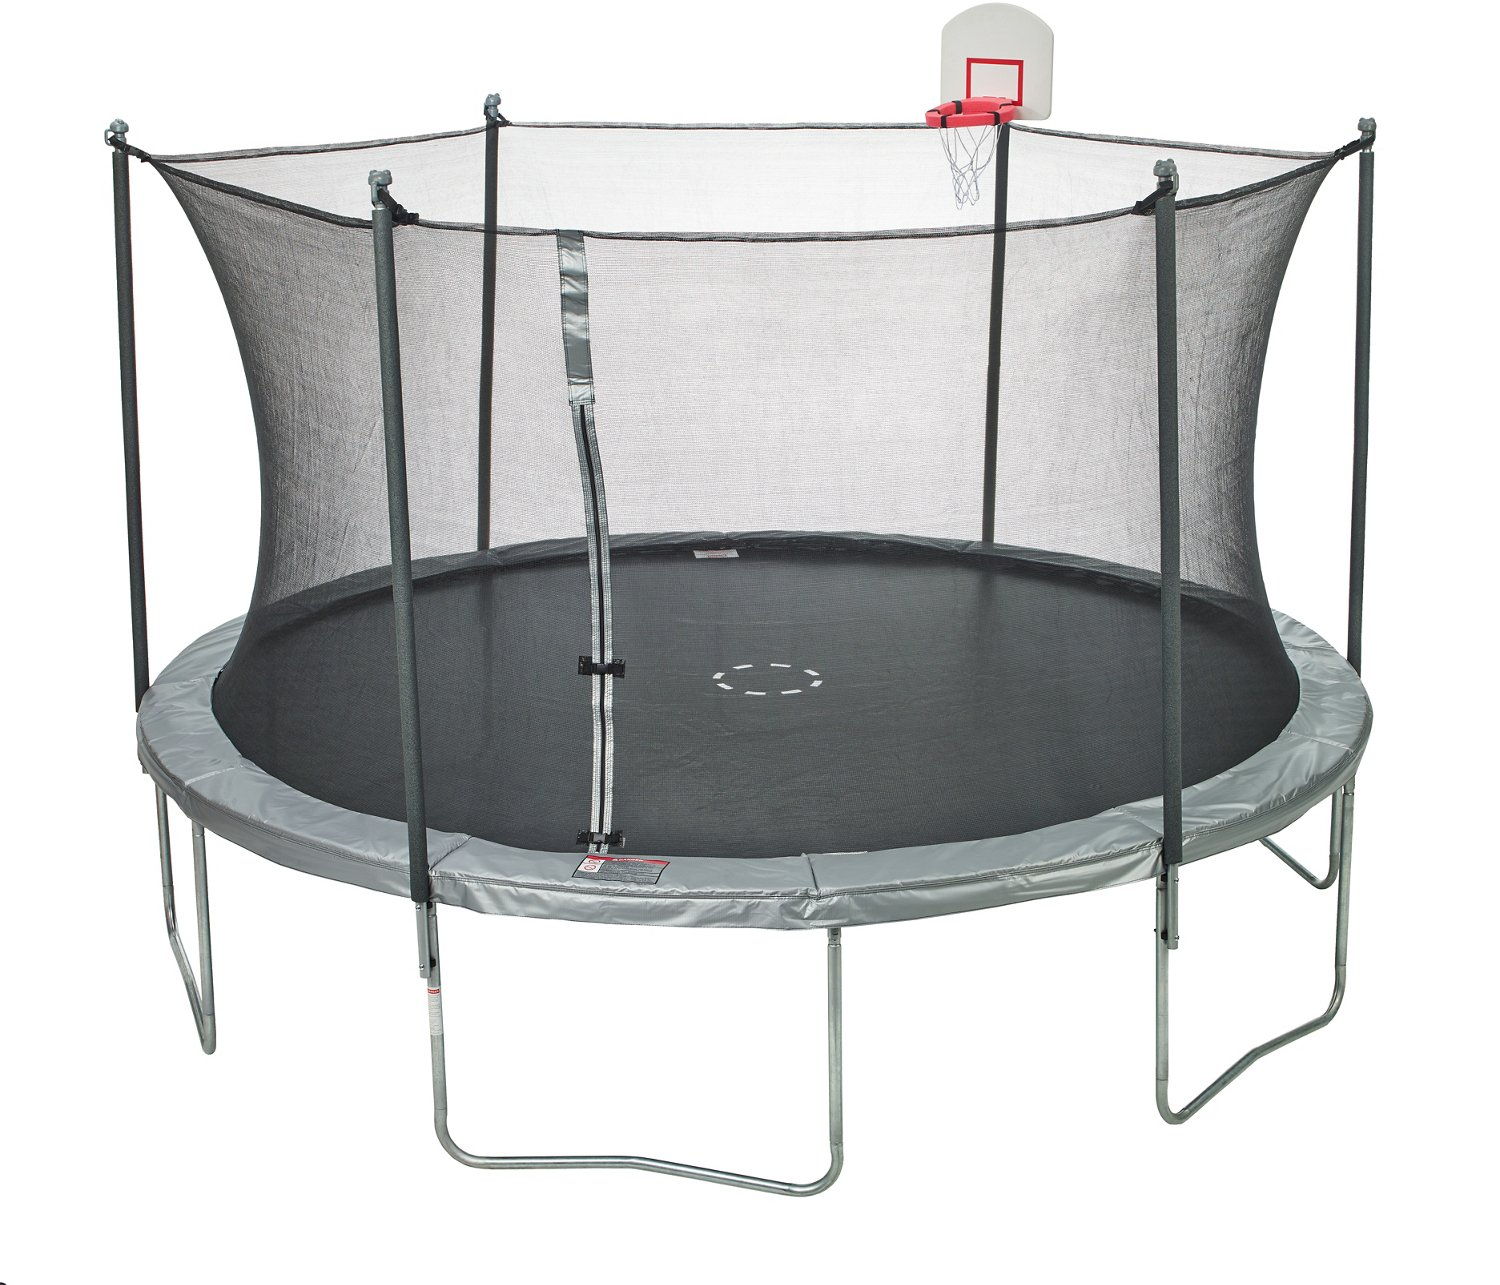 Trampolines For Sale Enclosed More Academy 1 10 Truck Bekas Display Product Reviews Jumpzone 15 Ft Trampoline With Dunkzone Basketball Hoop Spinner Flash Litezone